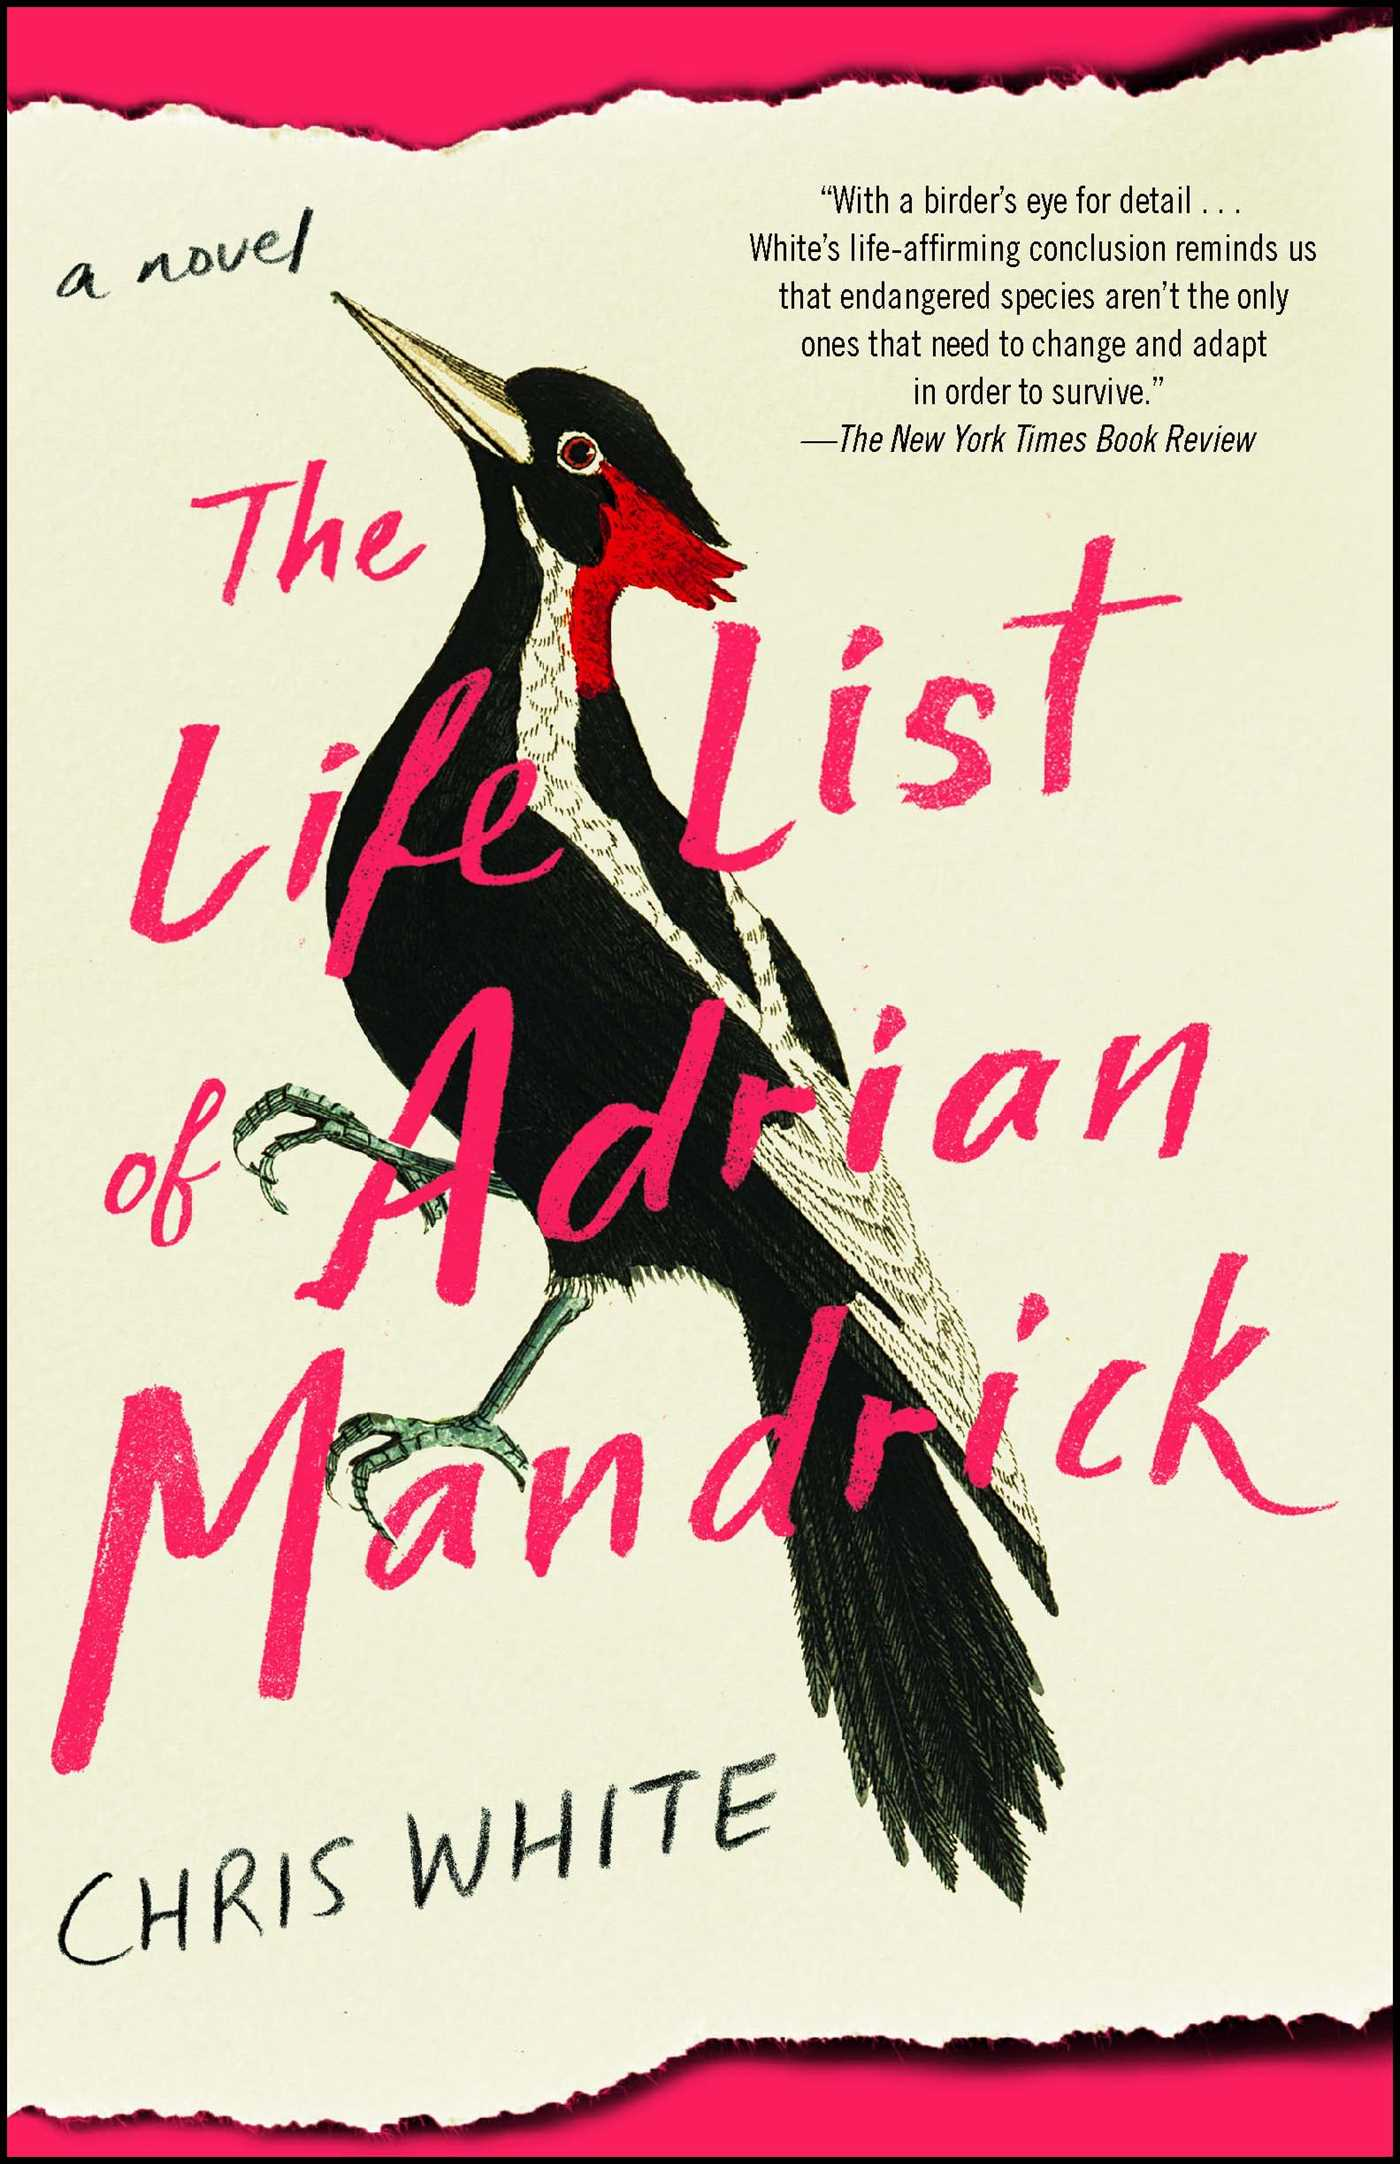 The life list of adrian mandrick 9781501174315 hr